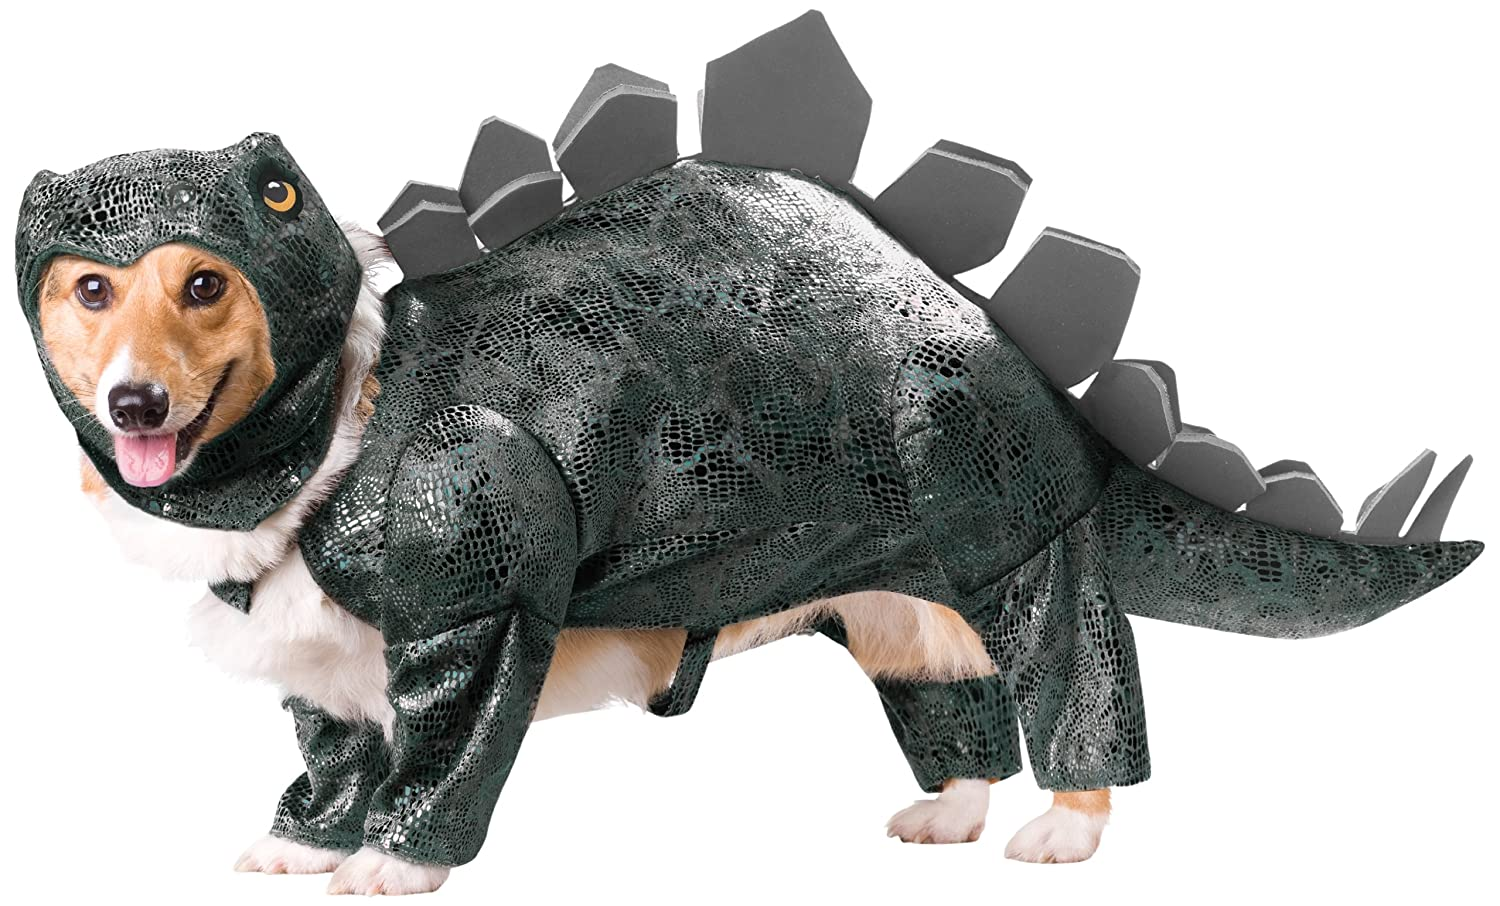 Animal Planet Stegosaurus Dog Costume, Small Amazon.co.uk Pet Supplies